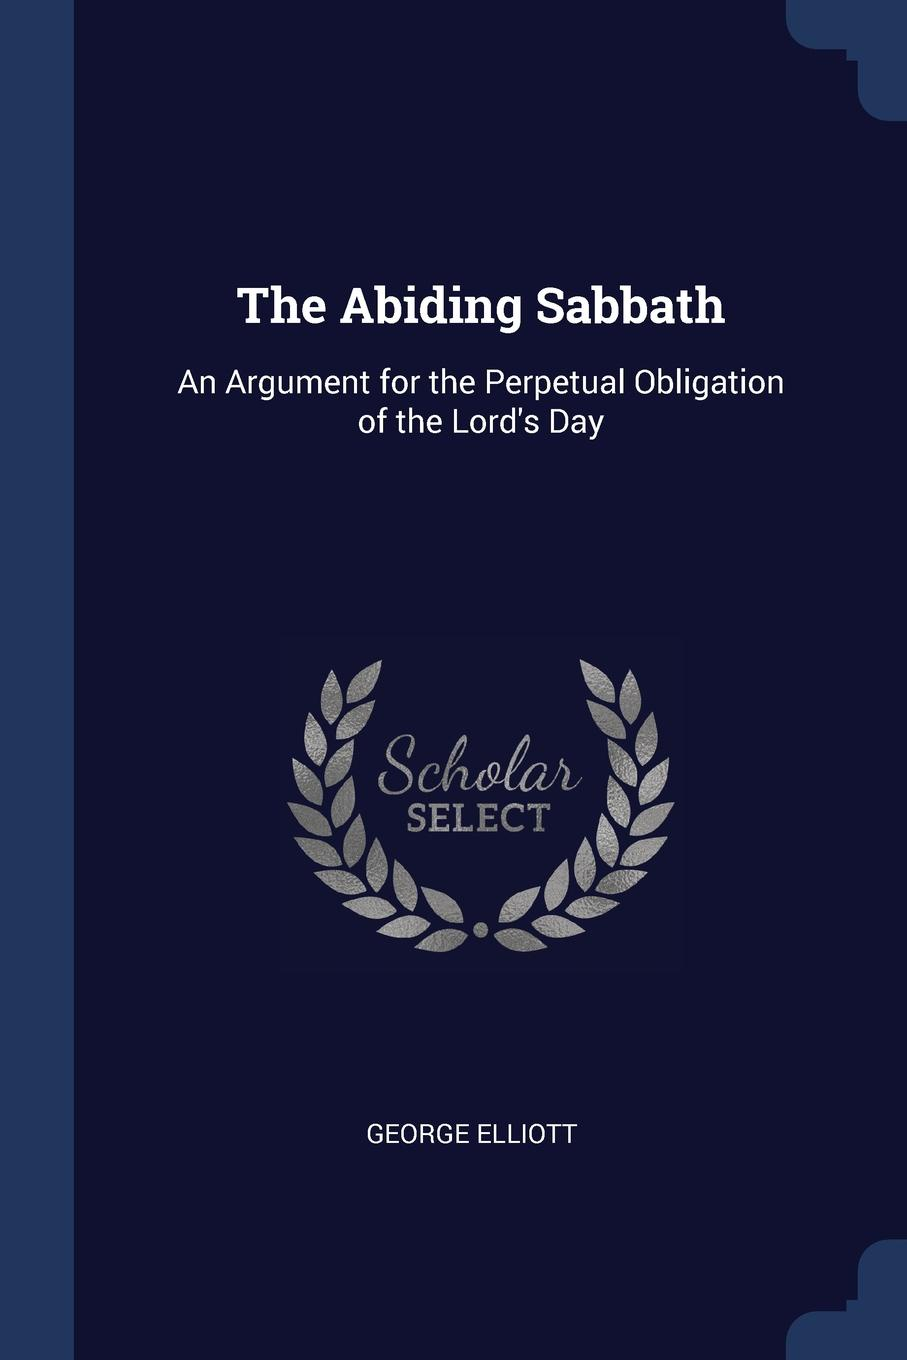 George Elliott The Abiding Sabbath. An Argument for the Perpetual Obligation of L Day